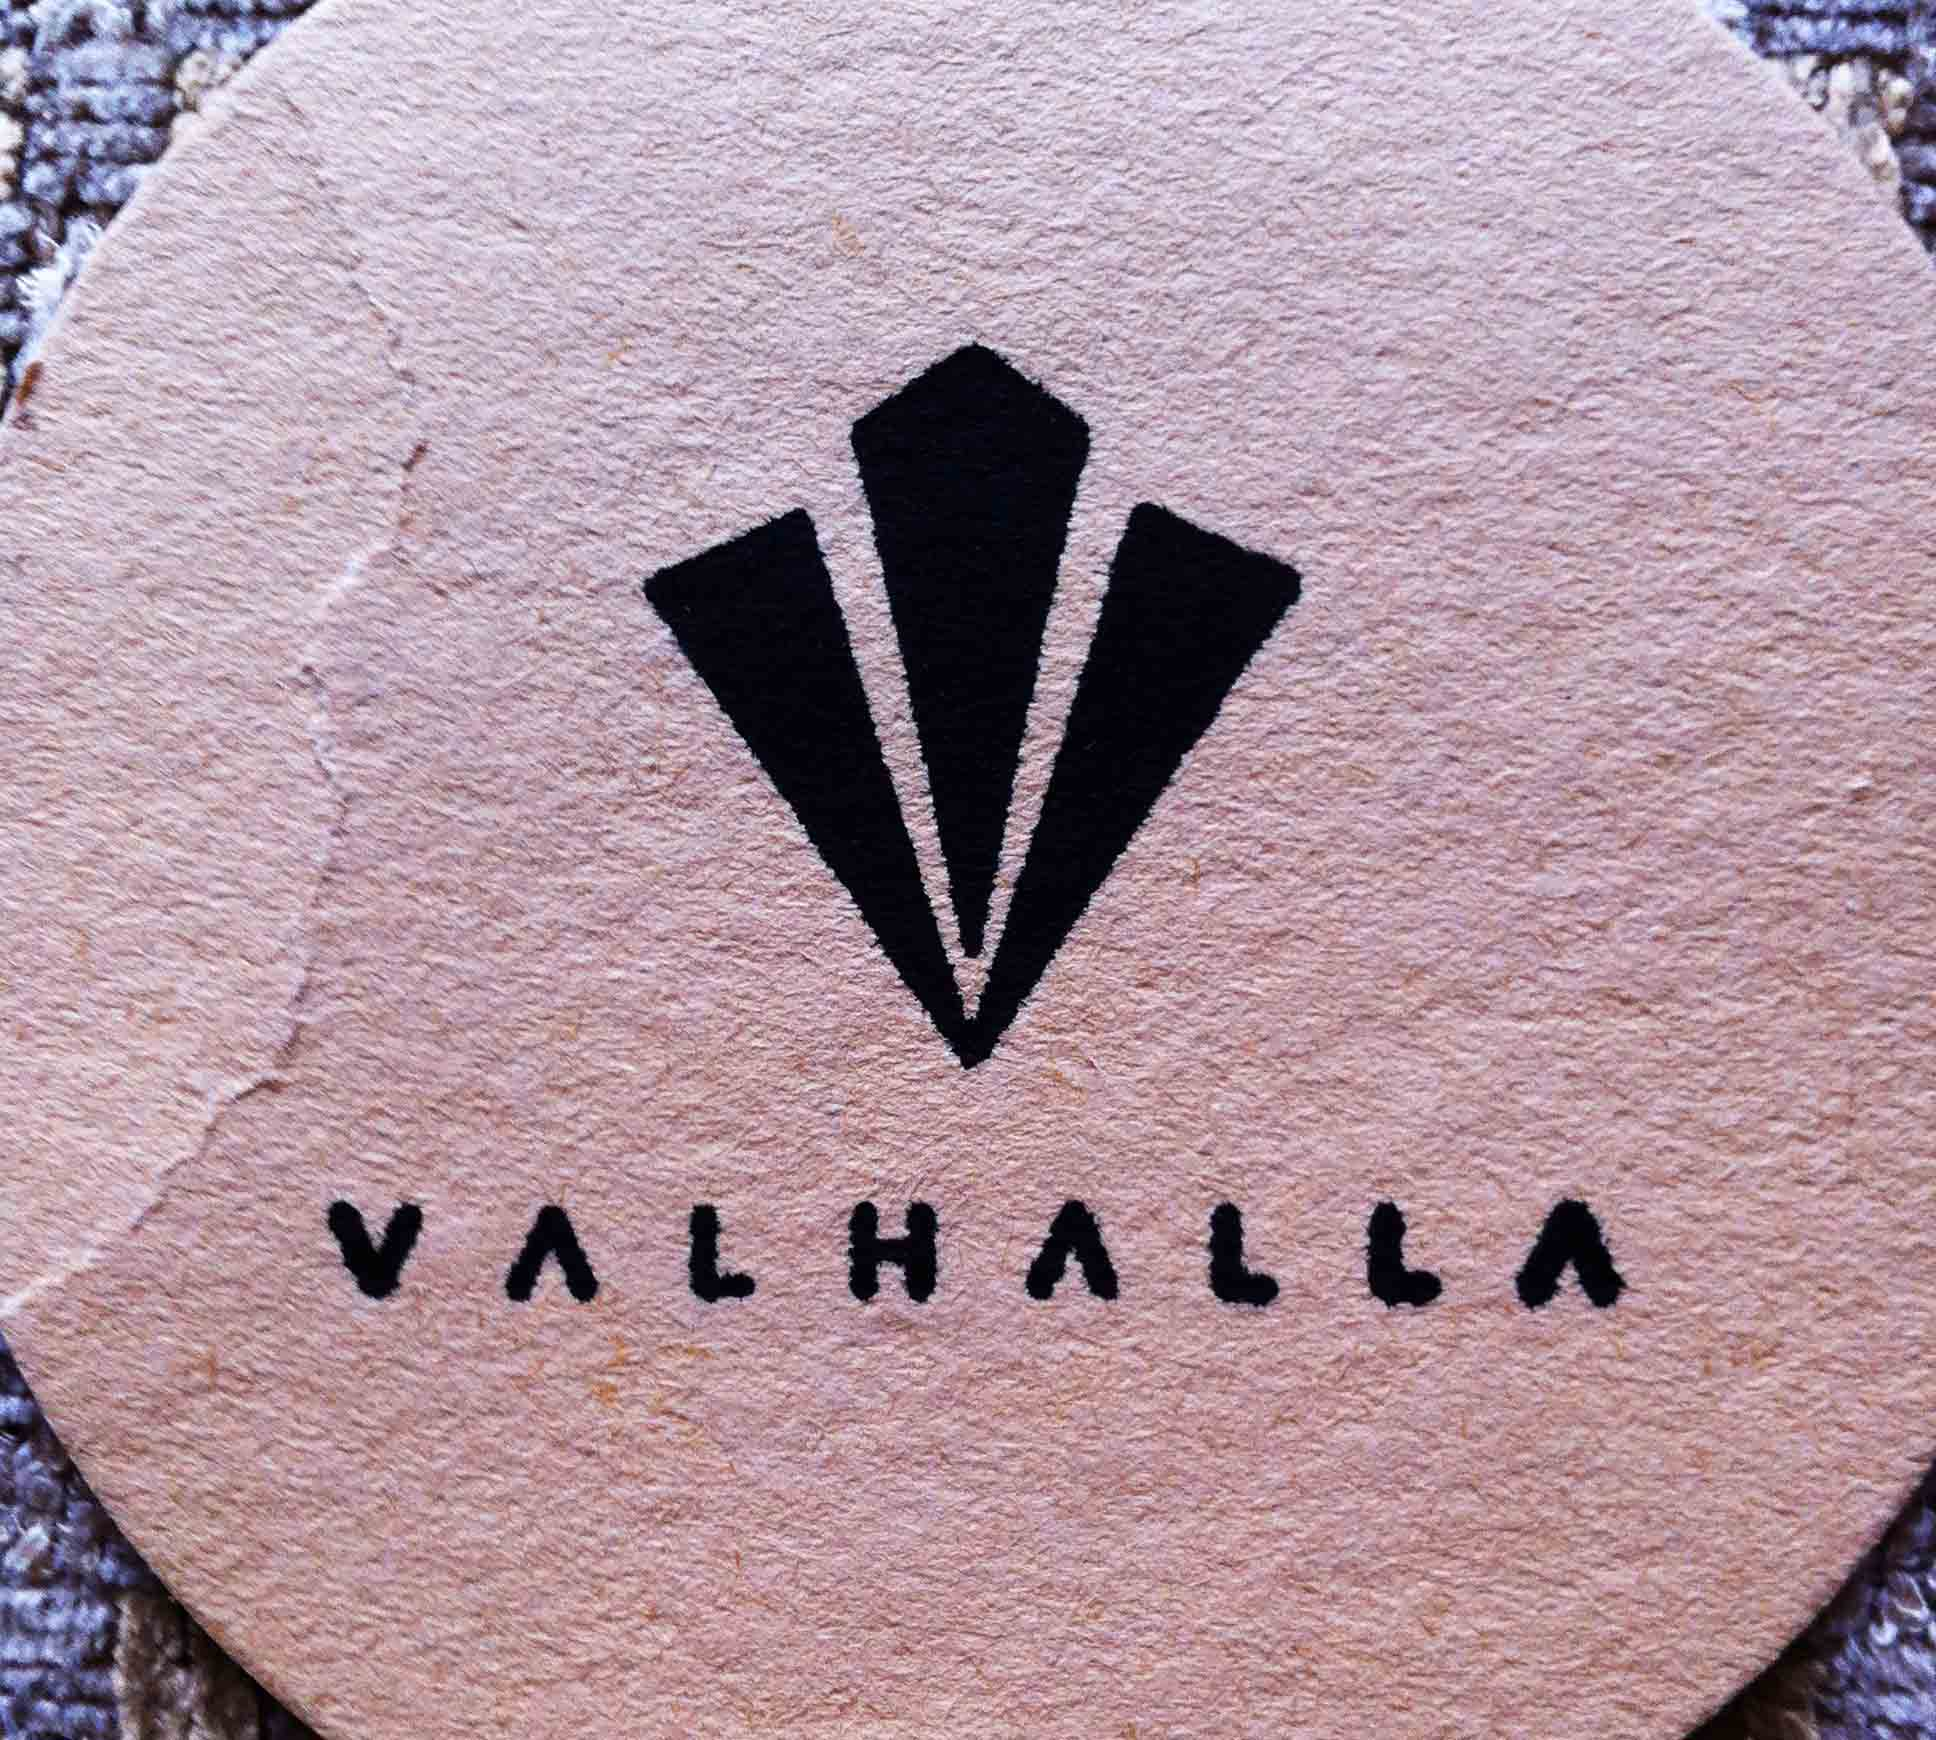 16. Valhalla Brewing, Pittsburgh, PA 1996